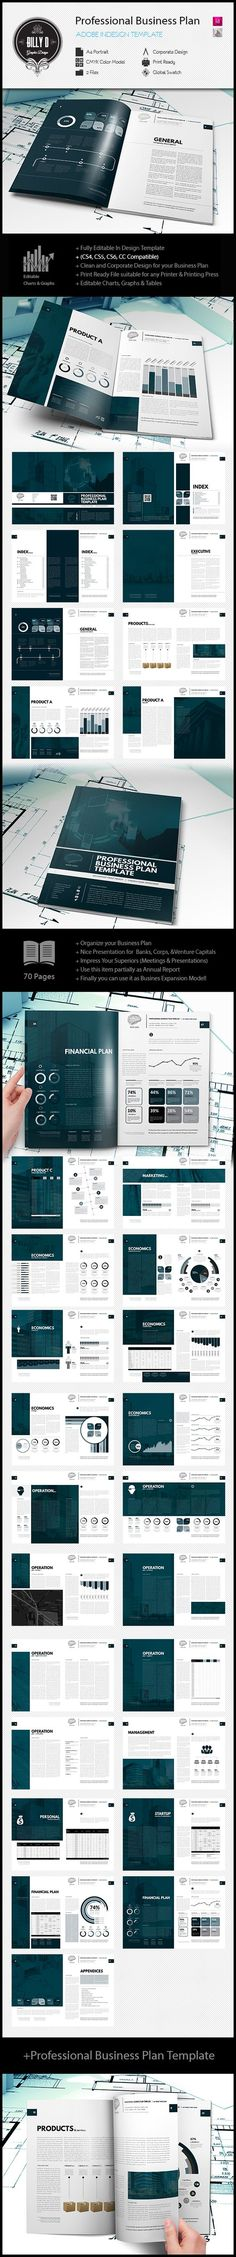 Professional Business Plan Template The business plan consists - company plan template